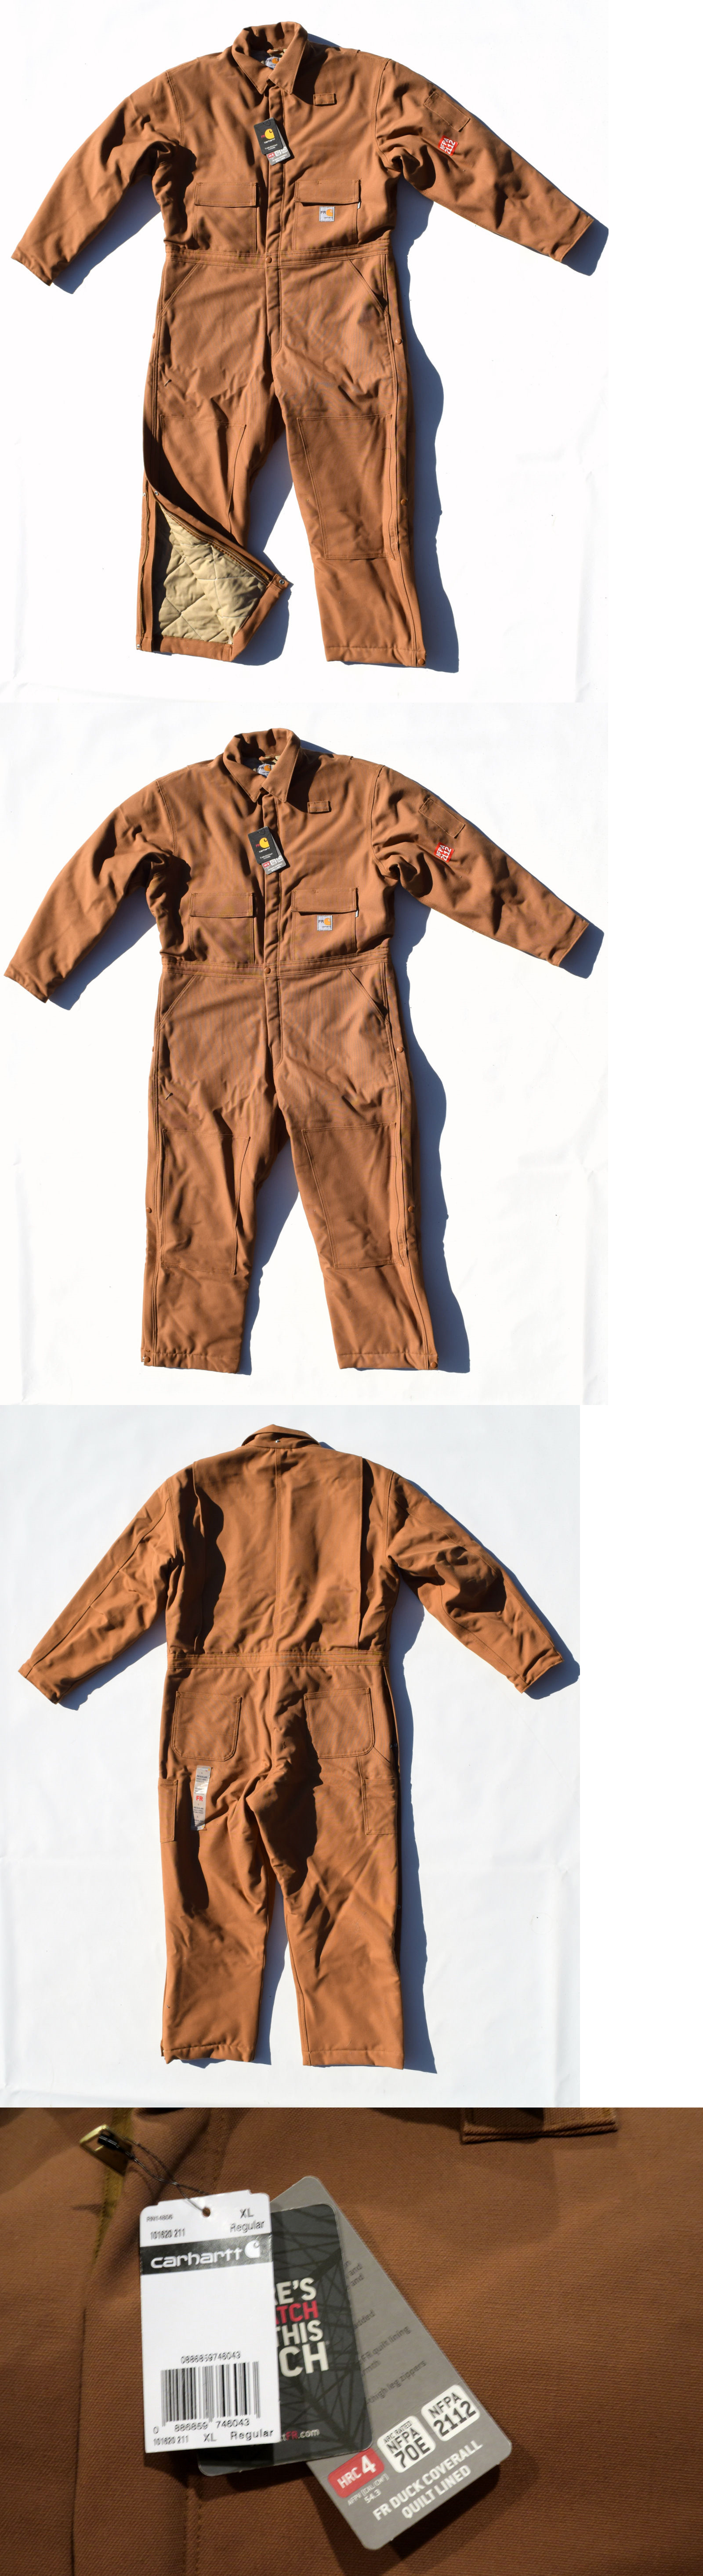 e2ee4ea5c78b Coveralls and Jumpsuits 178962  Carhartt Heavyweight Insulated Fr Flame  Resistant Duck Coveralls Men S Xl 101620 -  BUY IT NOW ONLY   160.16 on  eBay!